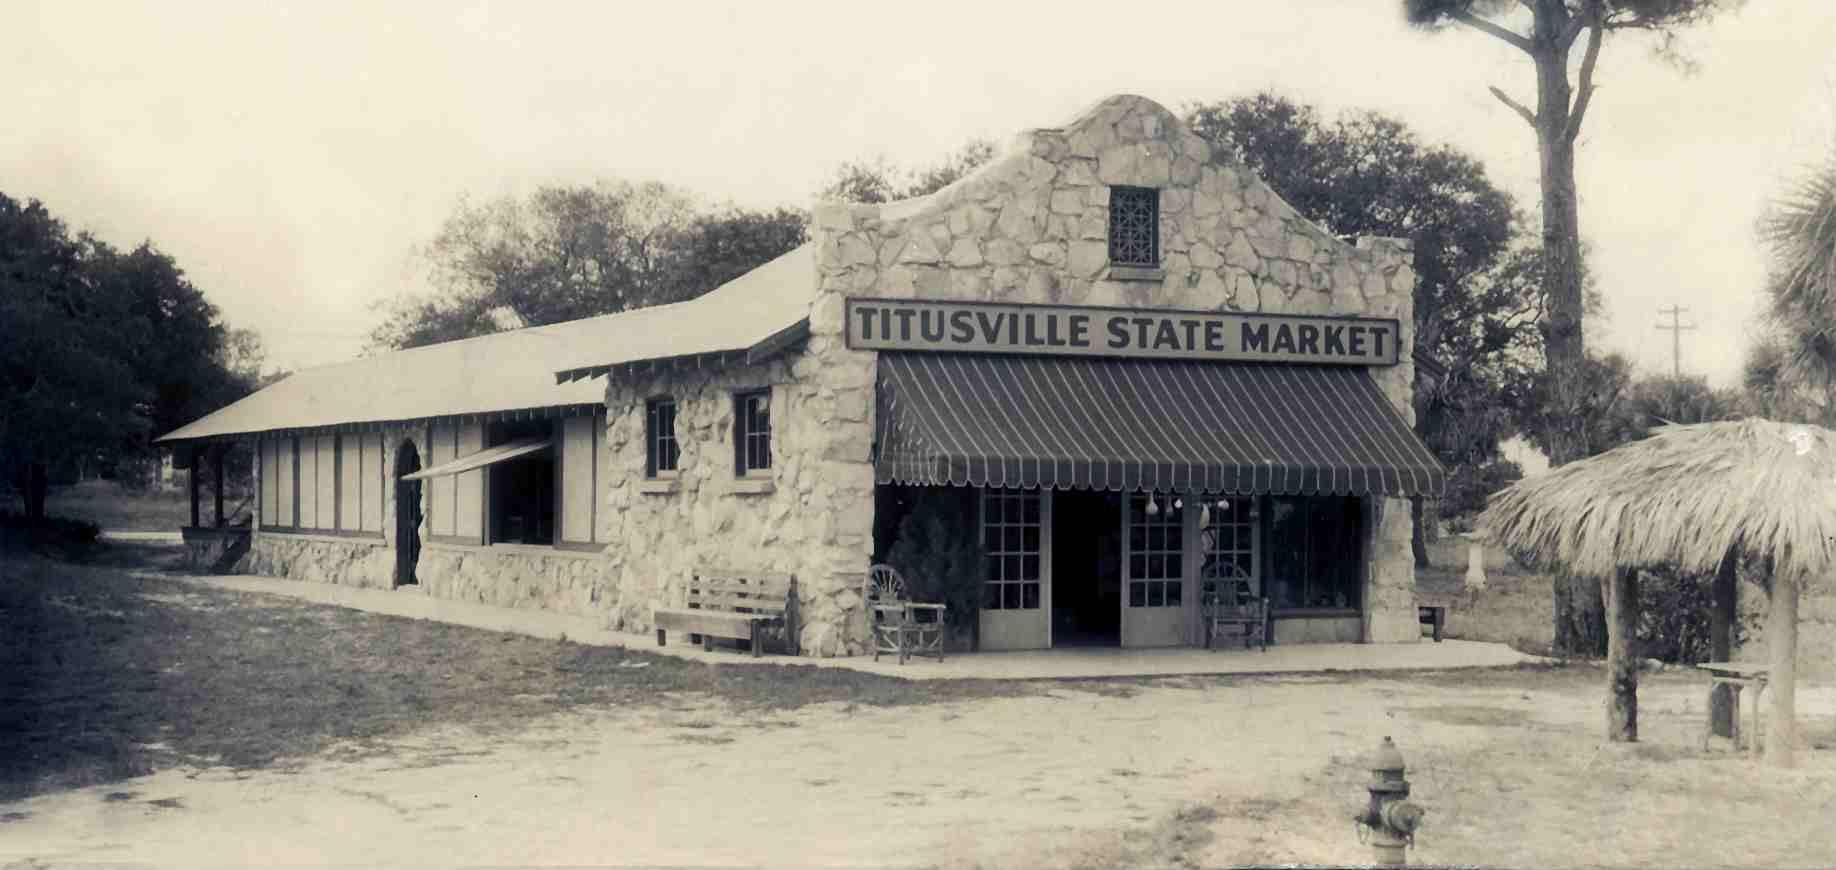 titusville state market building washington ave behind the current